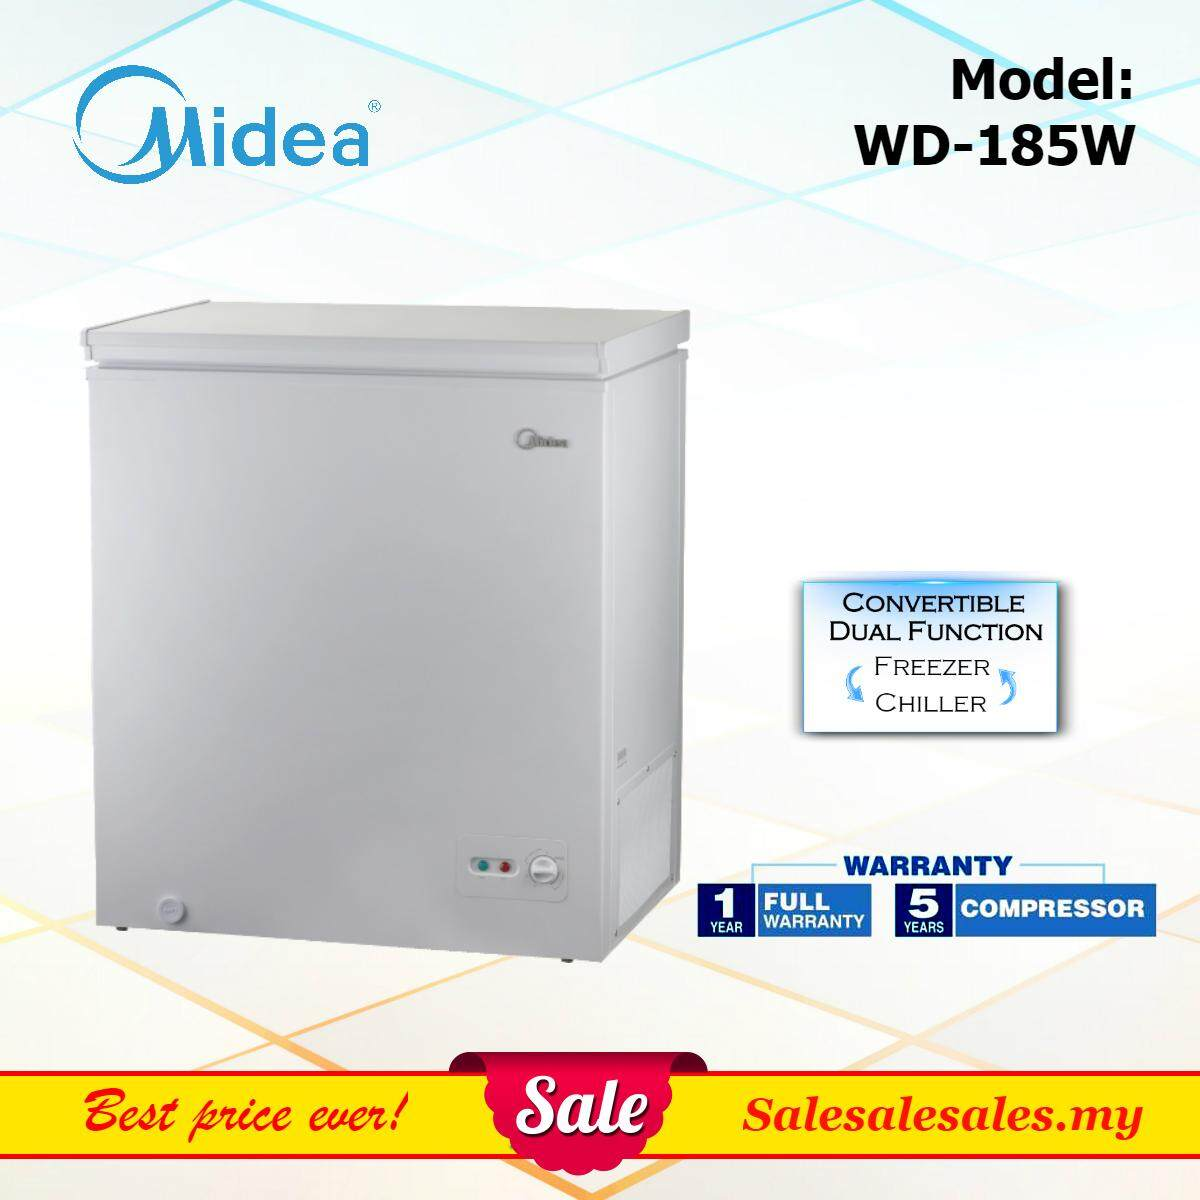 Midea WD-185W 185L (142L Net) Chest Freezer with Dual Function Peti Beku